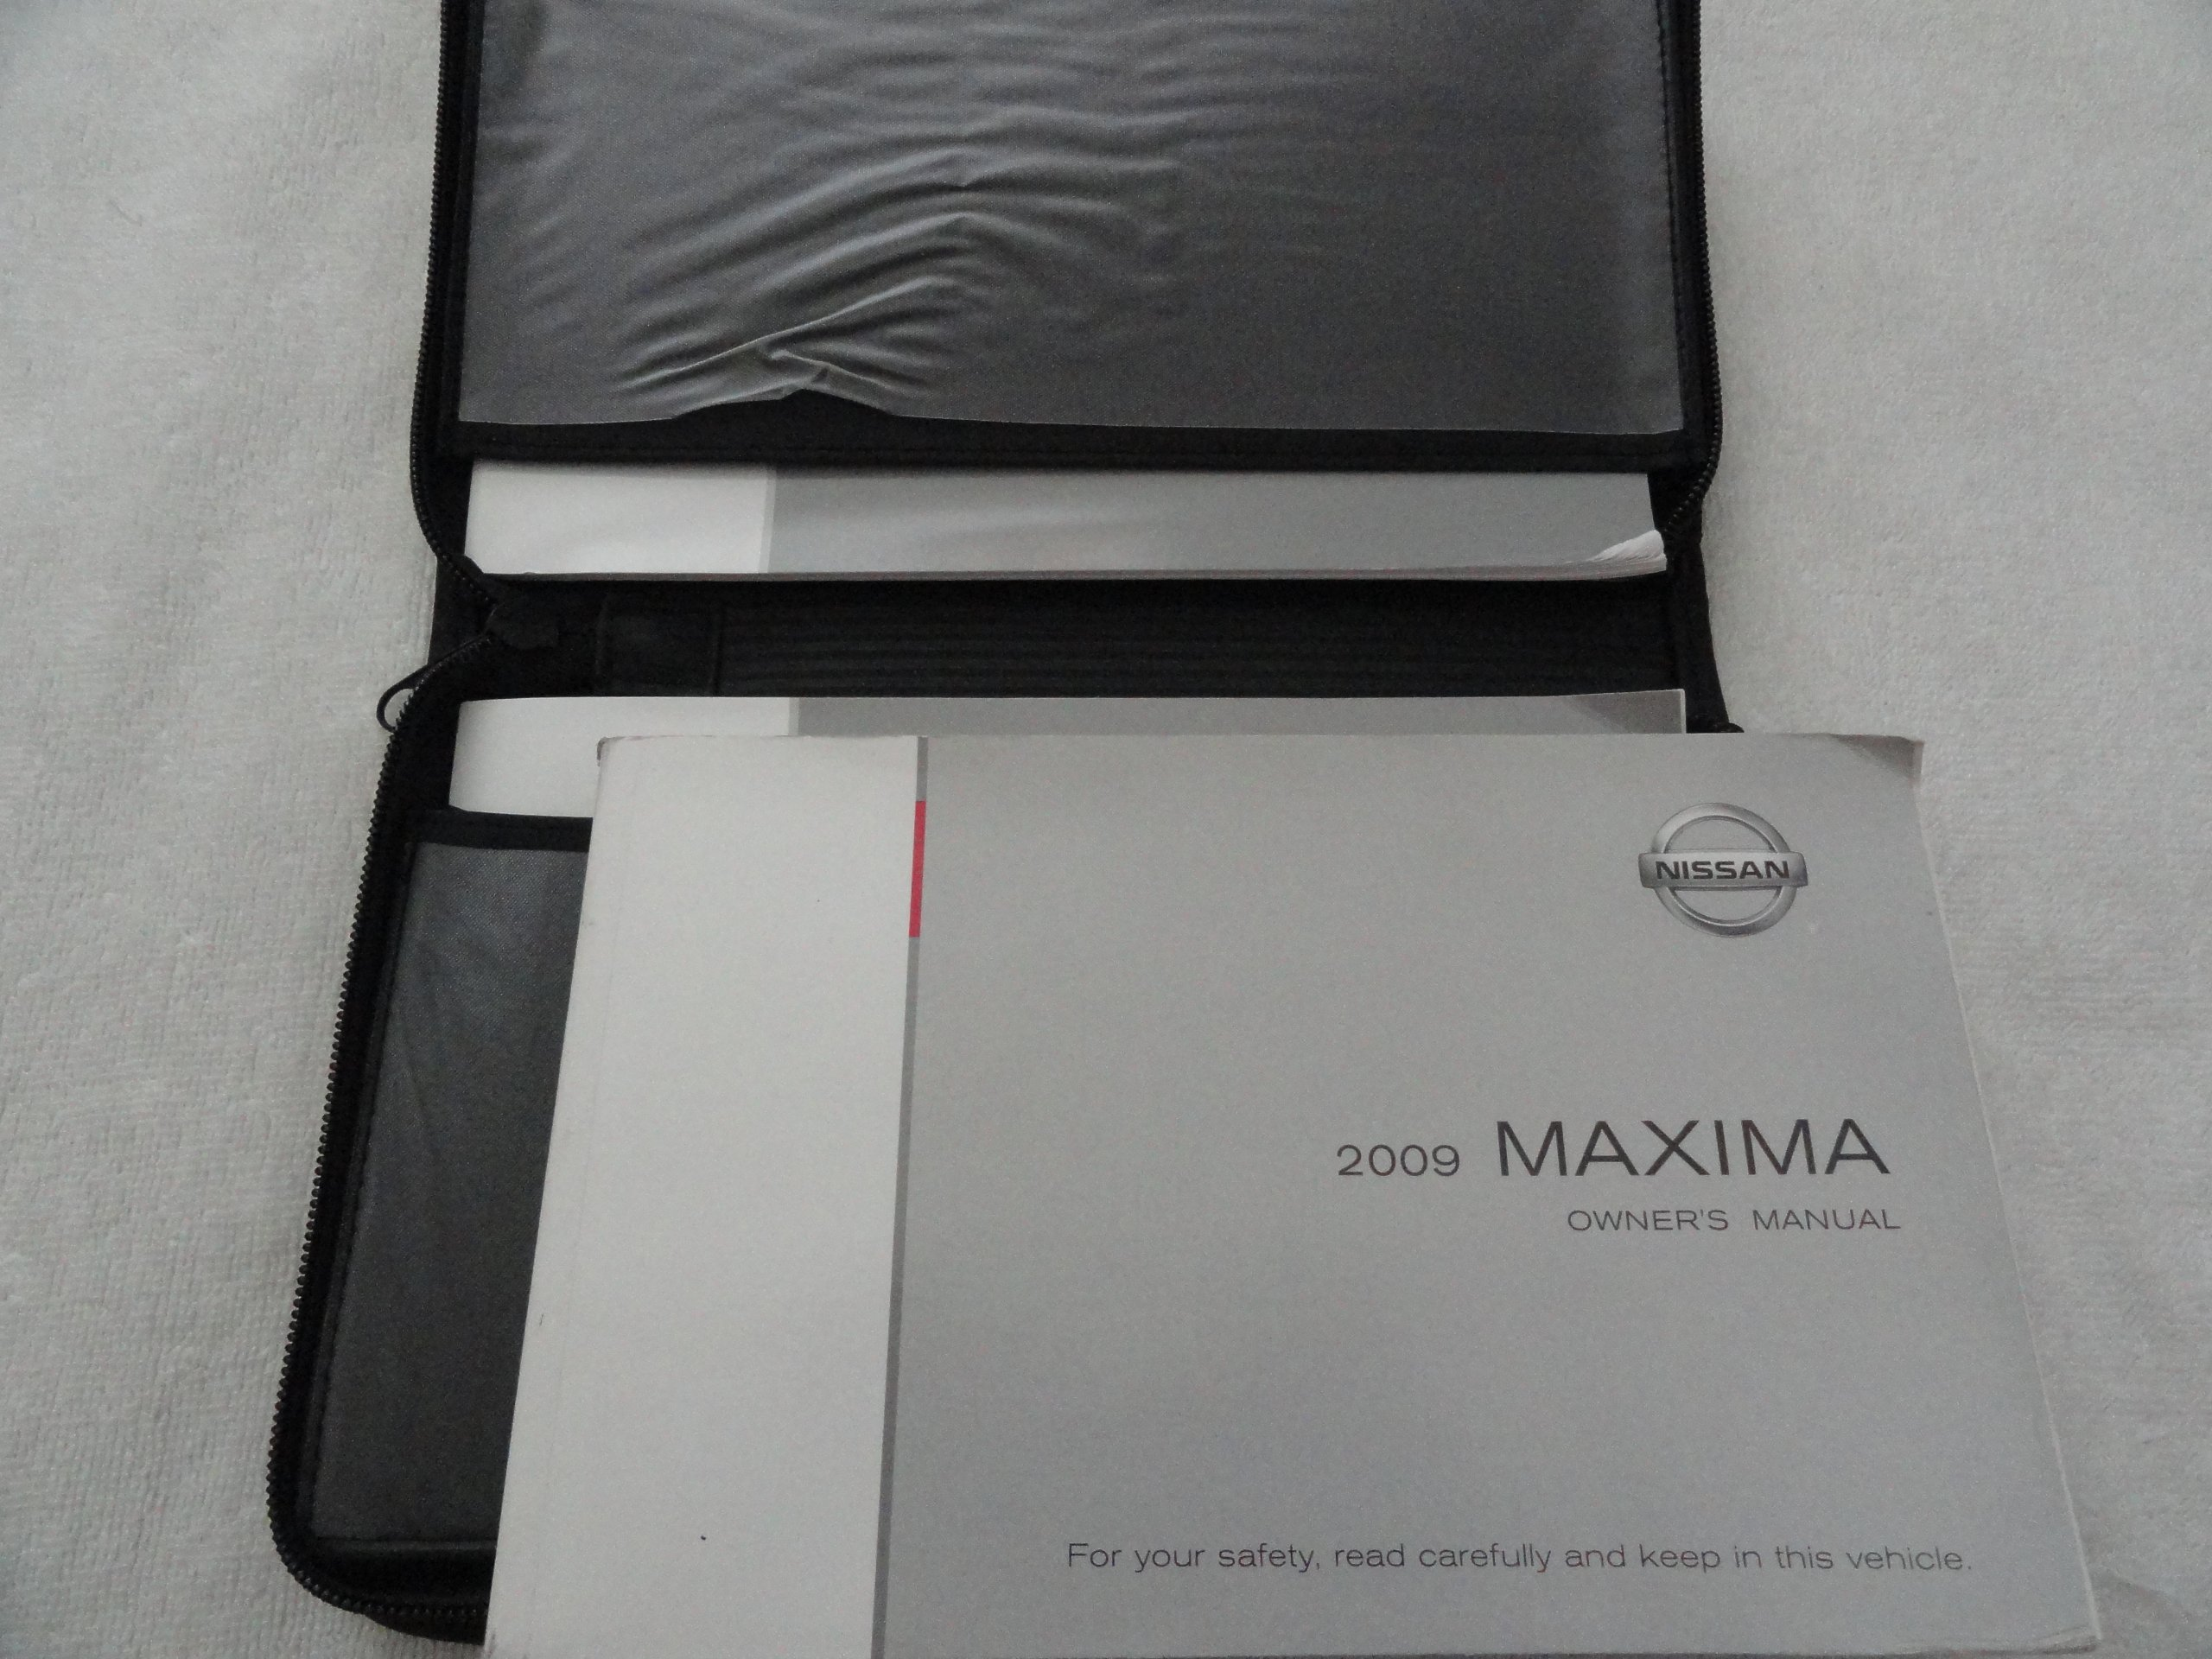 2009 nissan maxima owners manual nissan automotive amazon com books rh amazon com 2009 nissan maxima service manual 2009 nissan maxima manual transmission